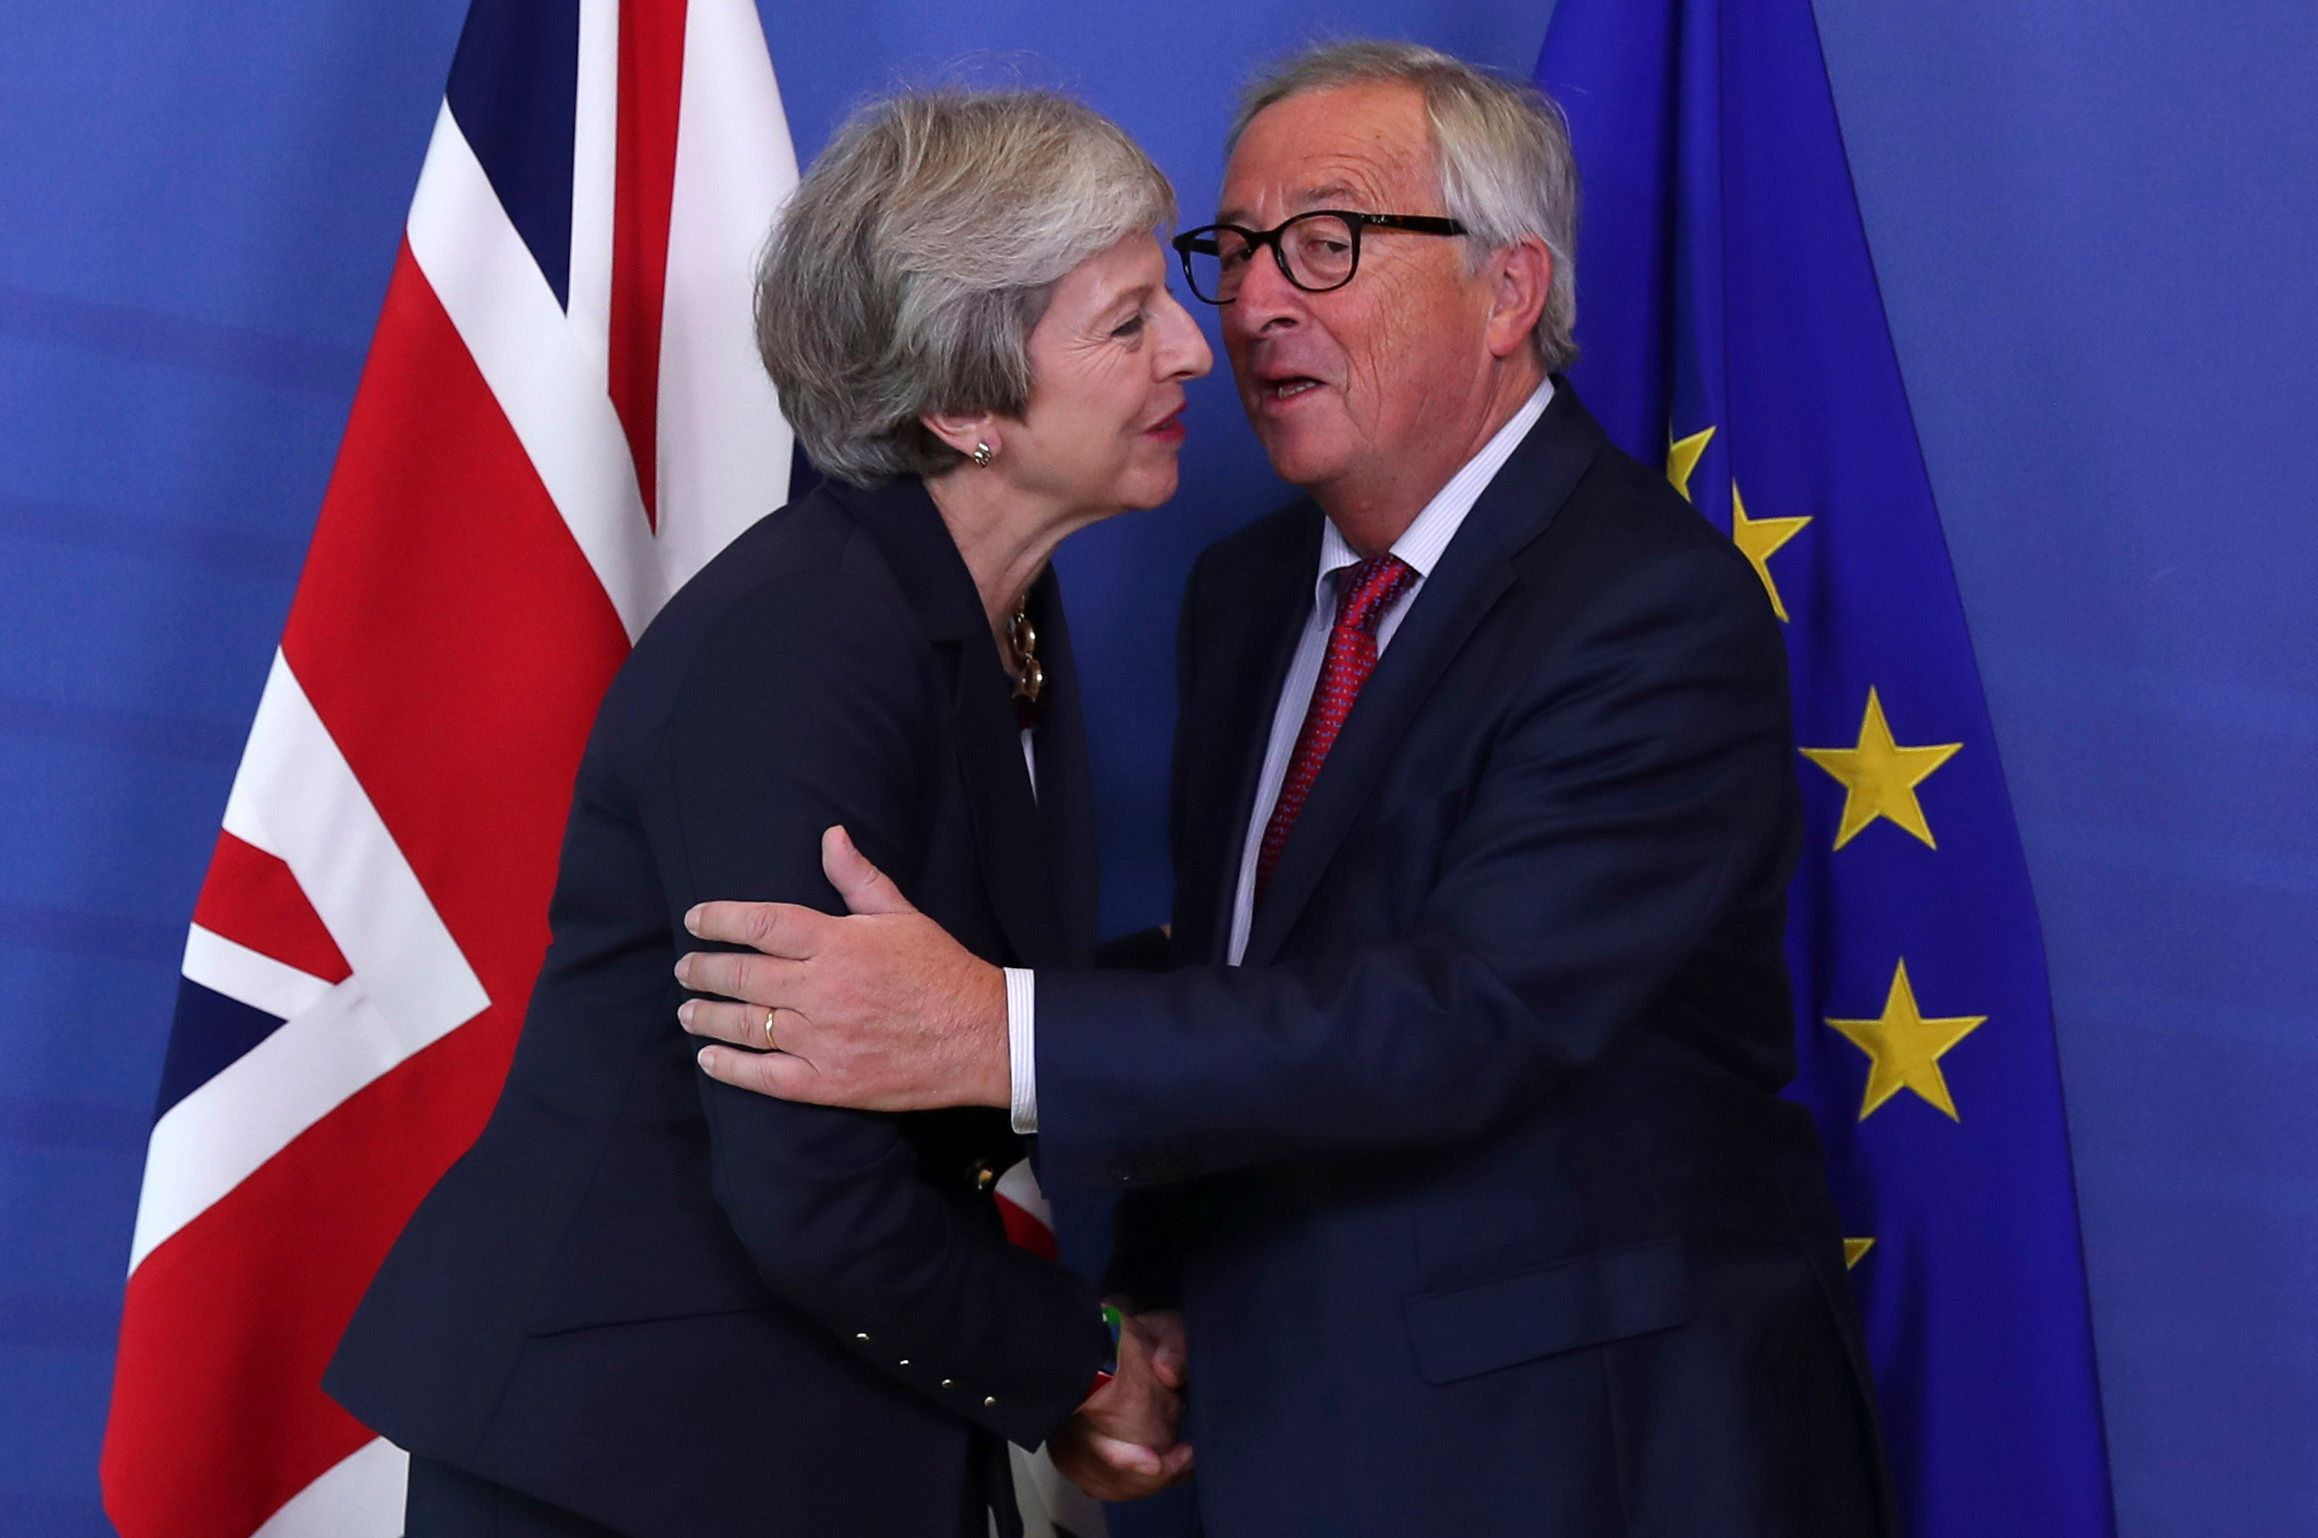 EU Boss Juncker Backs May's Plan to Delay Brexit Even Further